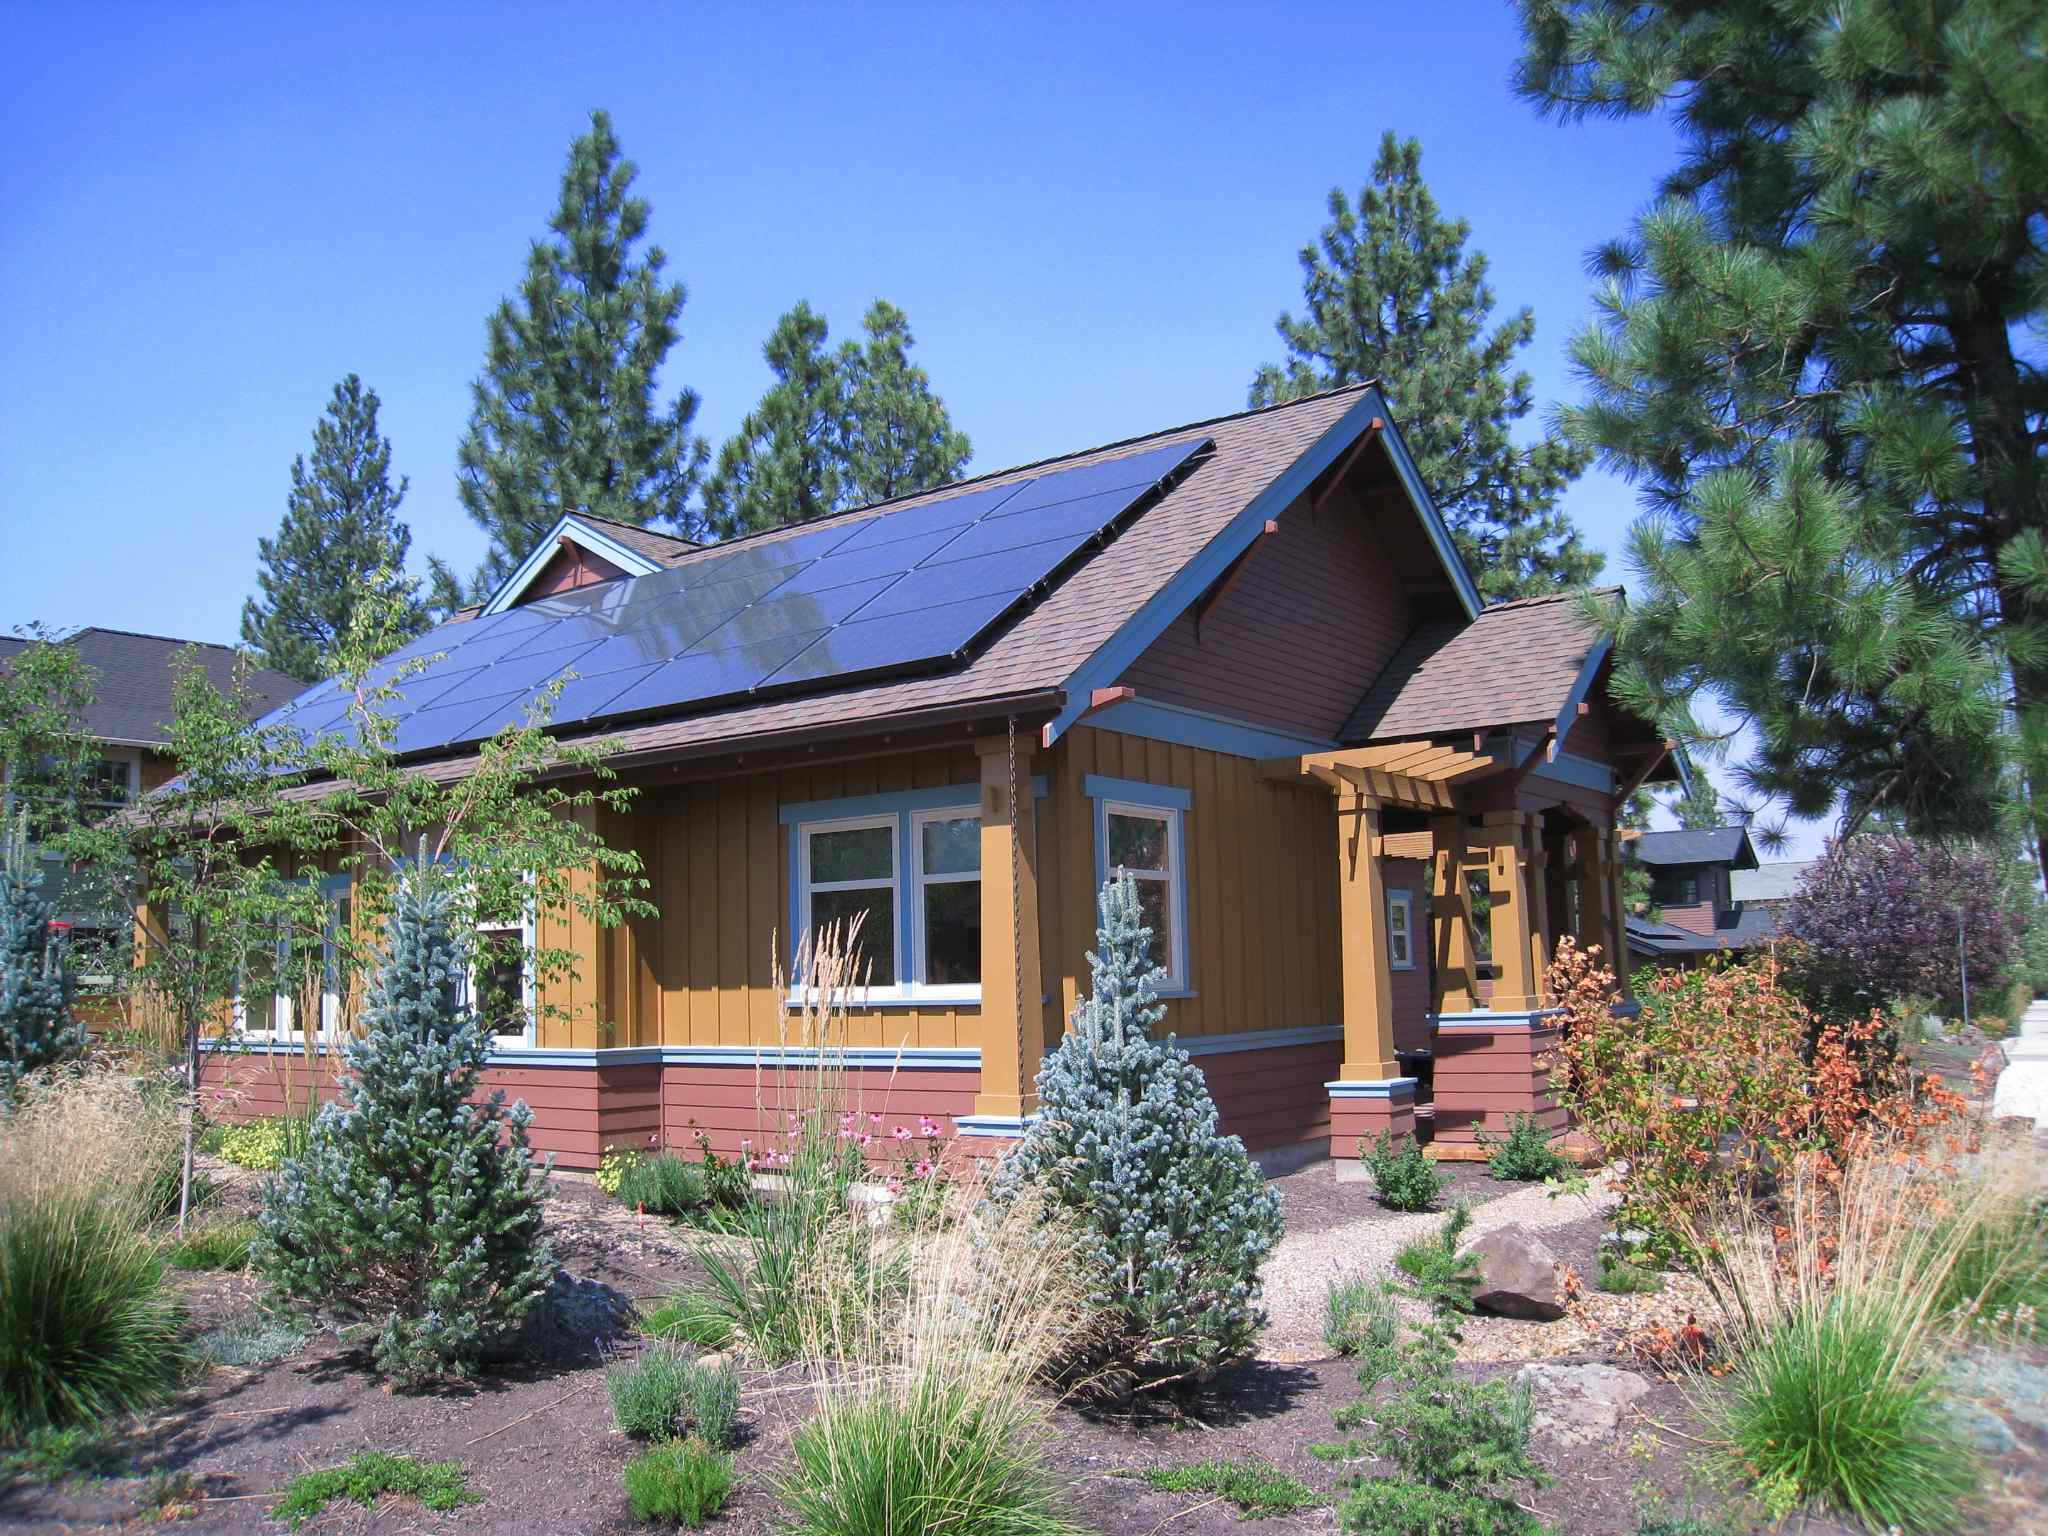 Zero energy home design zero homes green homes for Energy house